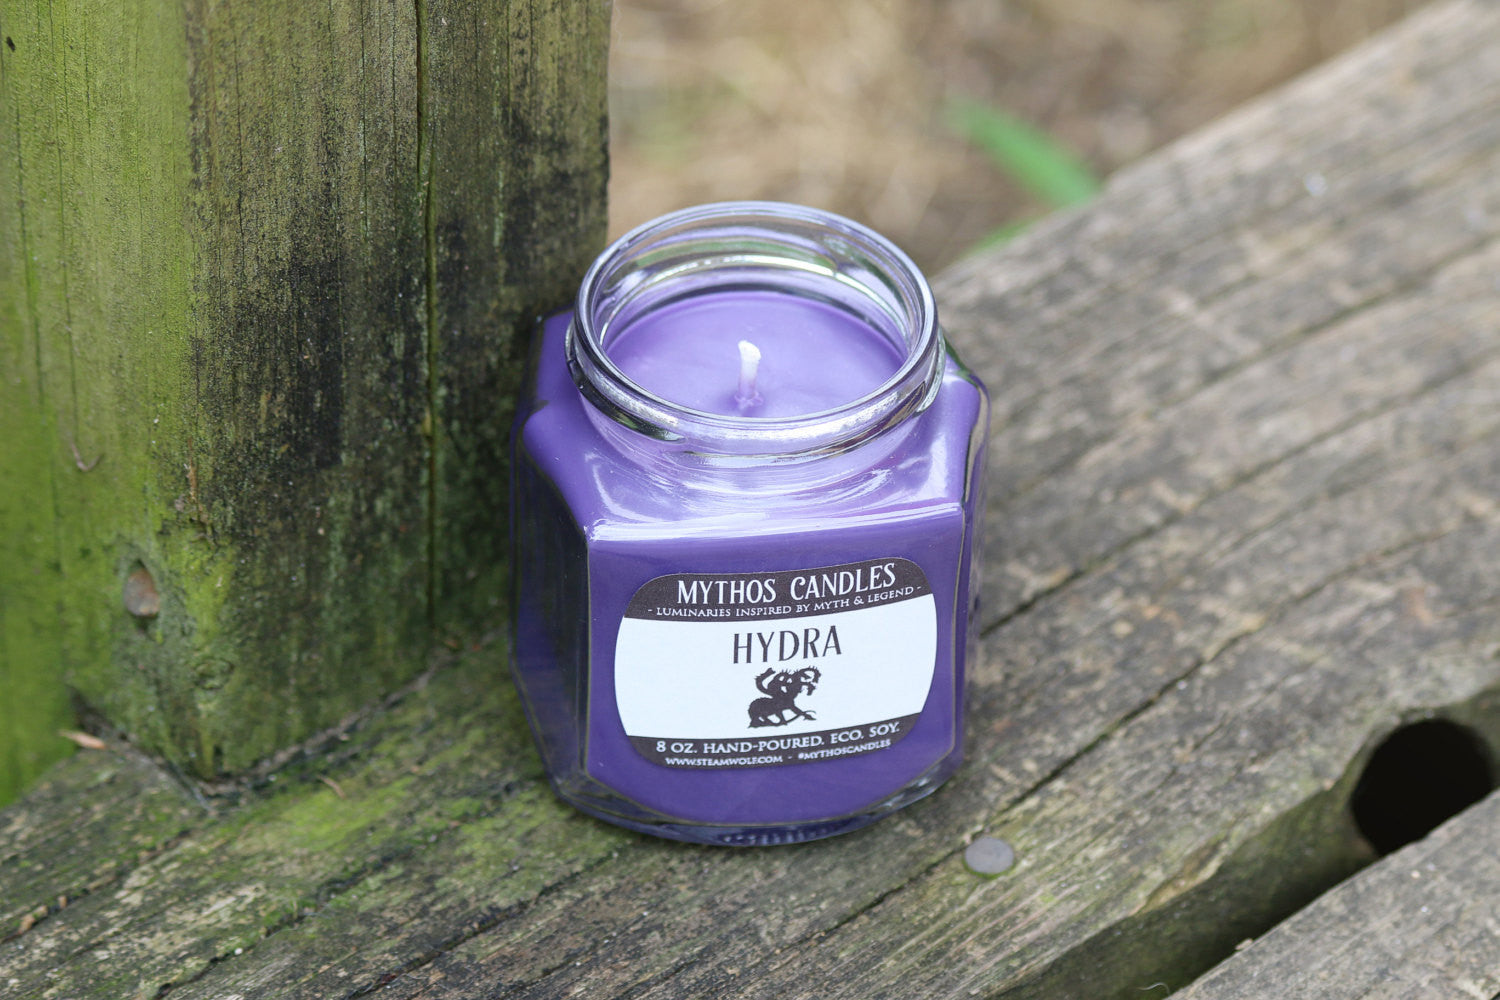 Mythos Candles - Hydra | 8oz. Strong Scented Soy Candle | Moonlake Musk - SteamWolf Symphony